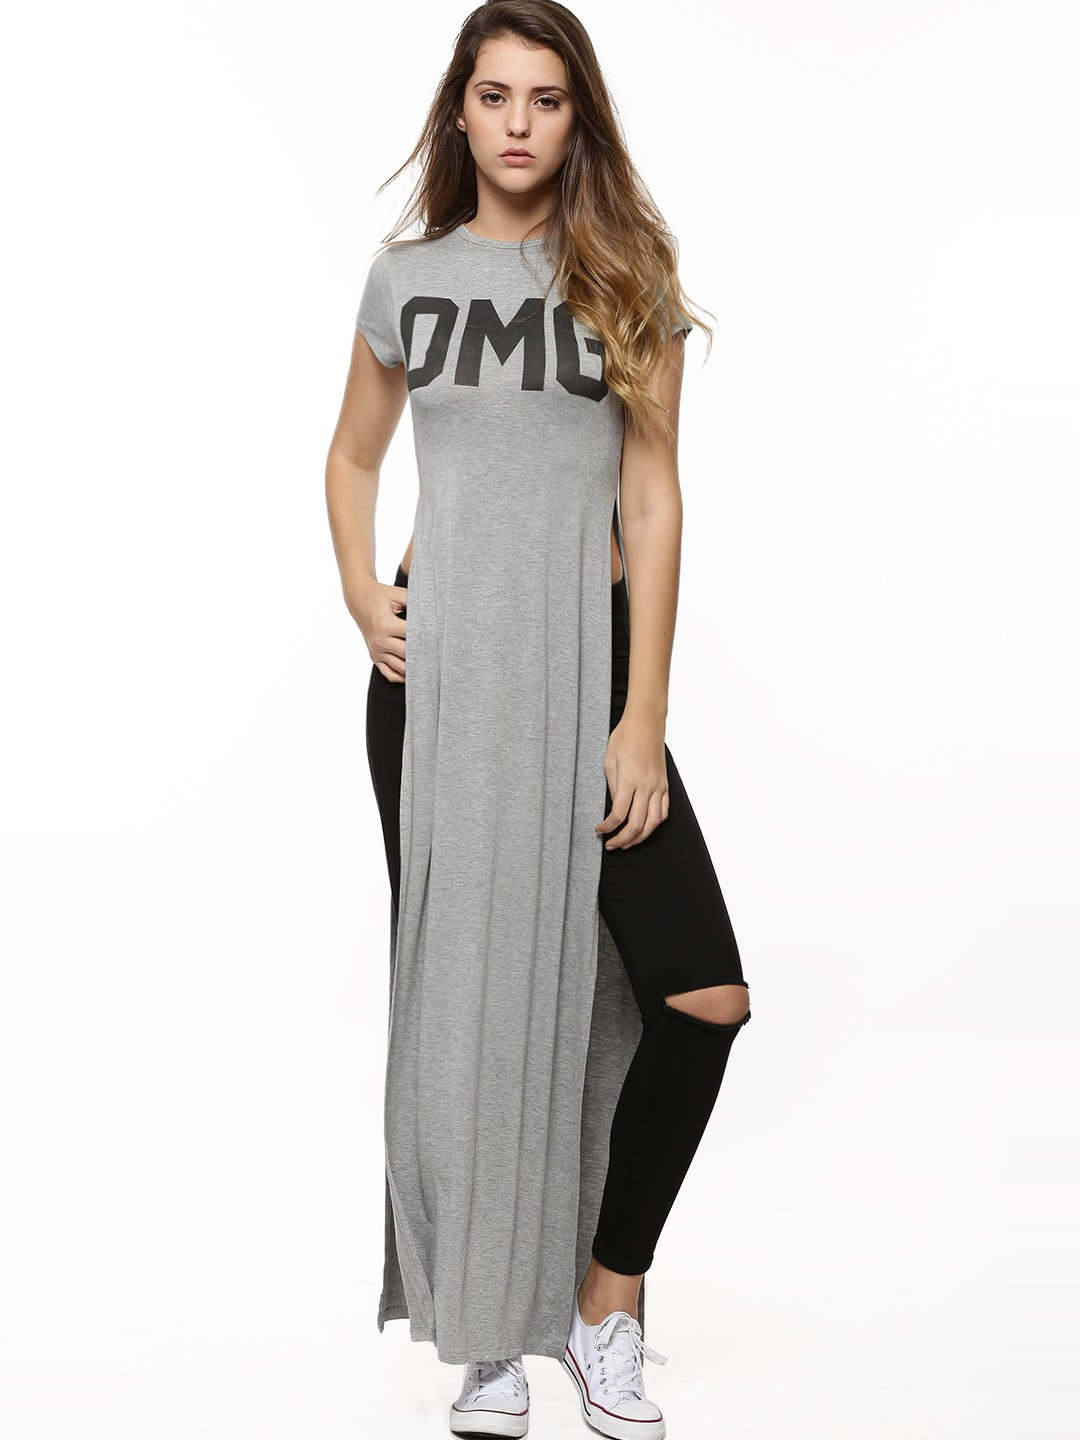 Free shipping and returns on Women's Maxi Dresses at teraisompcz8d.ga